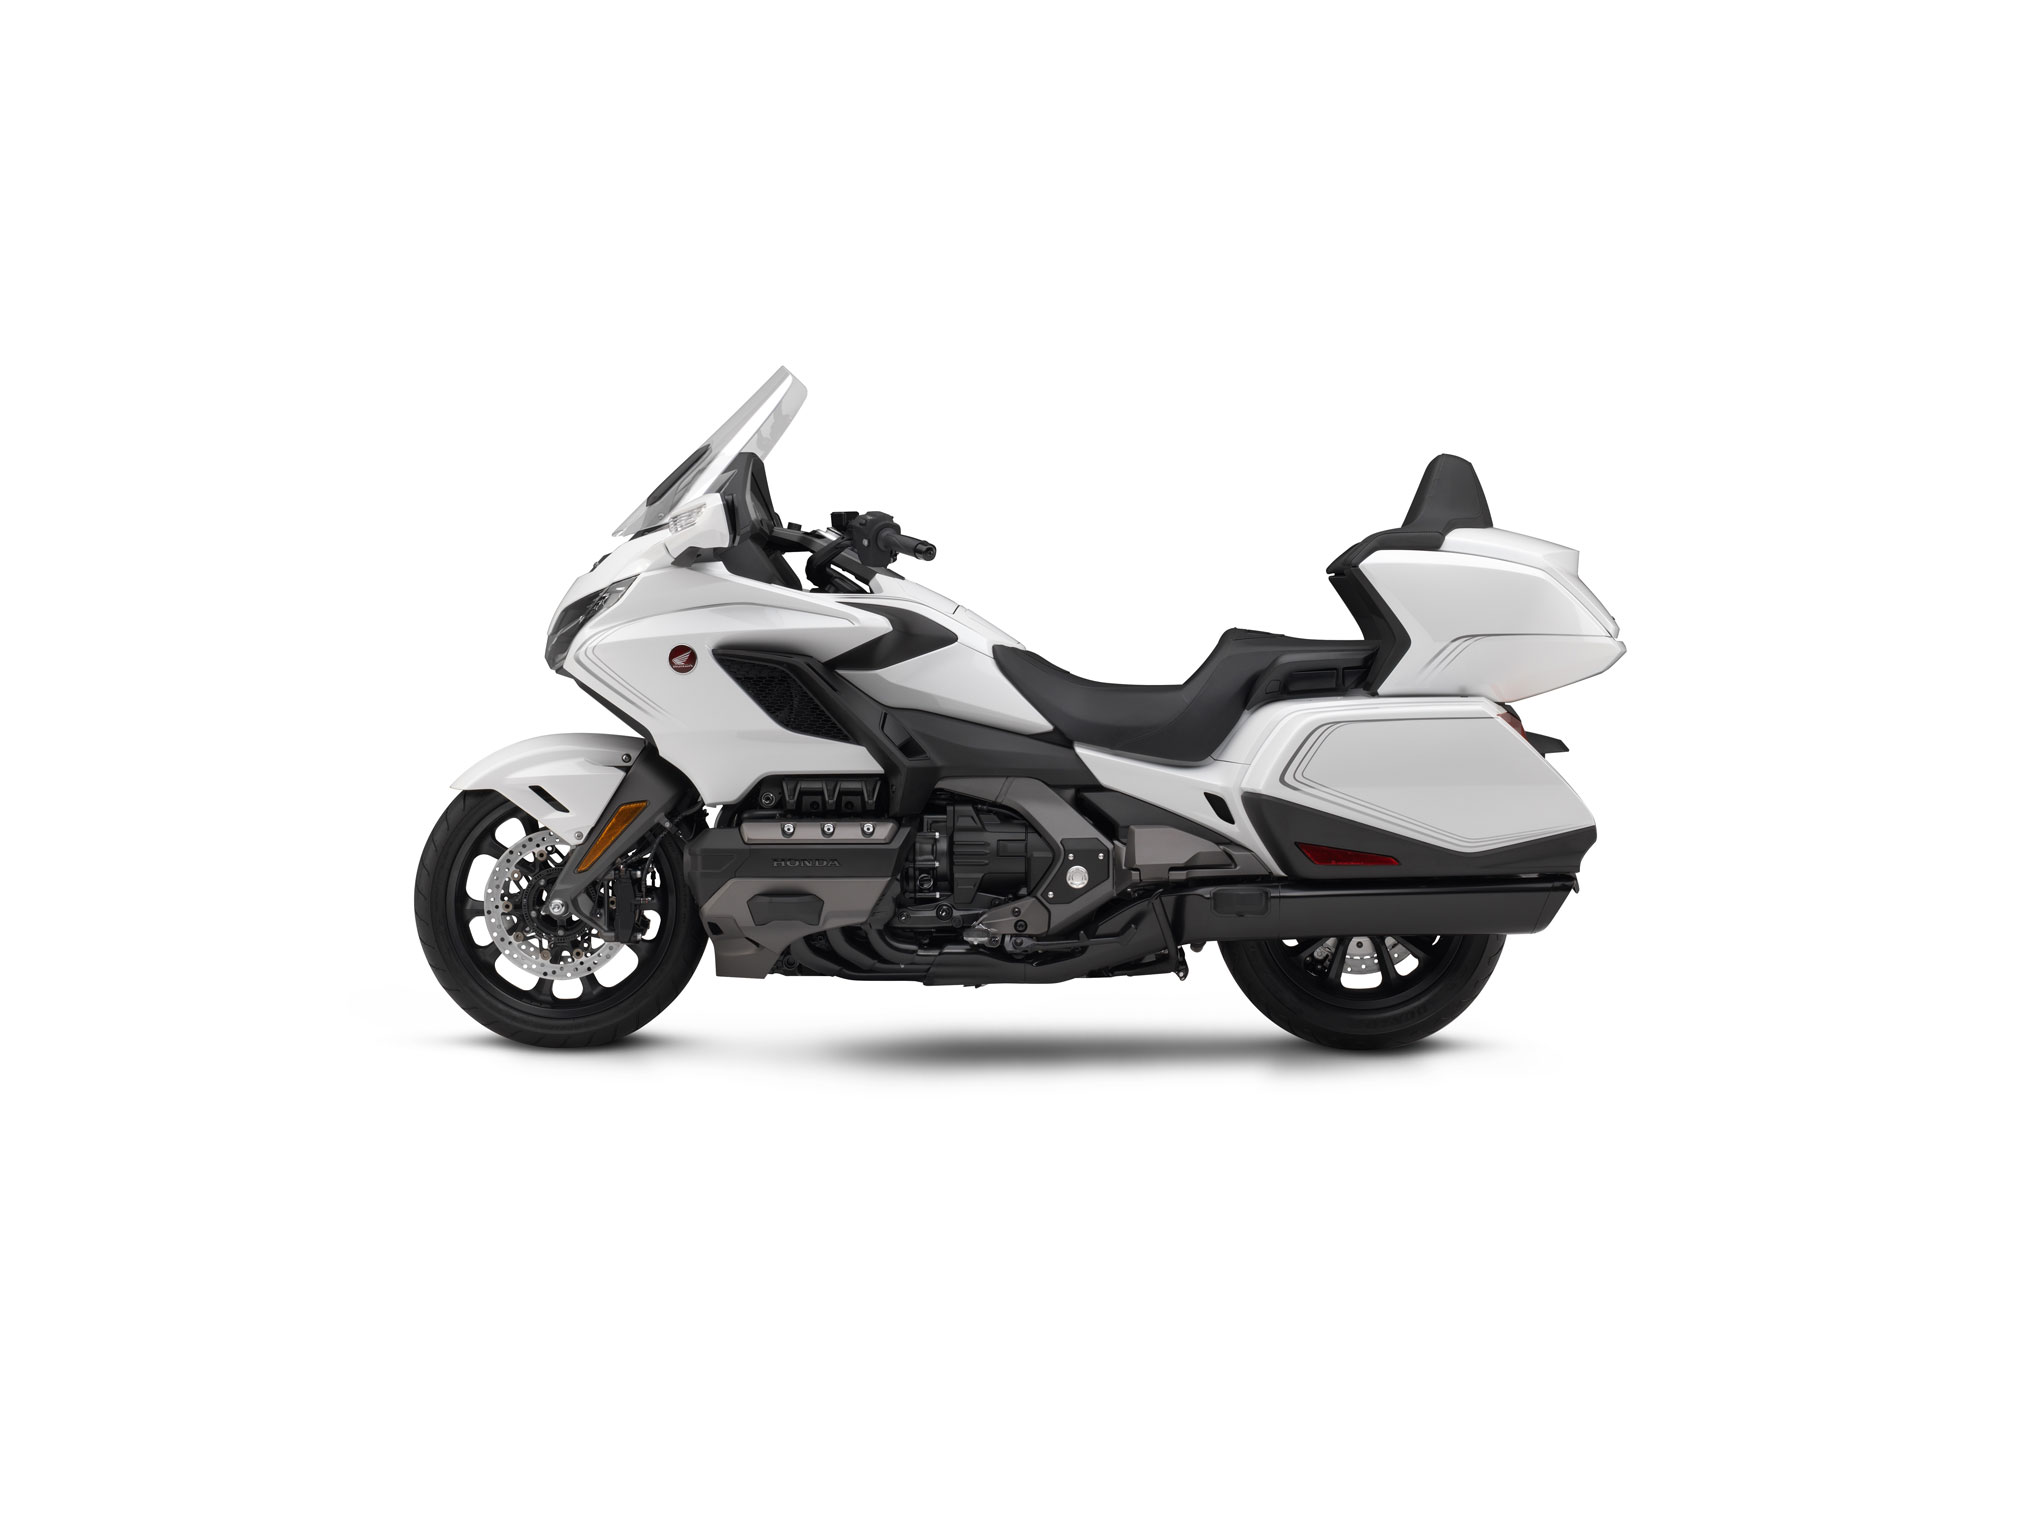 2020 honda gold wing tour dct guide • total motorcycle